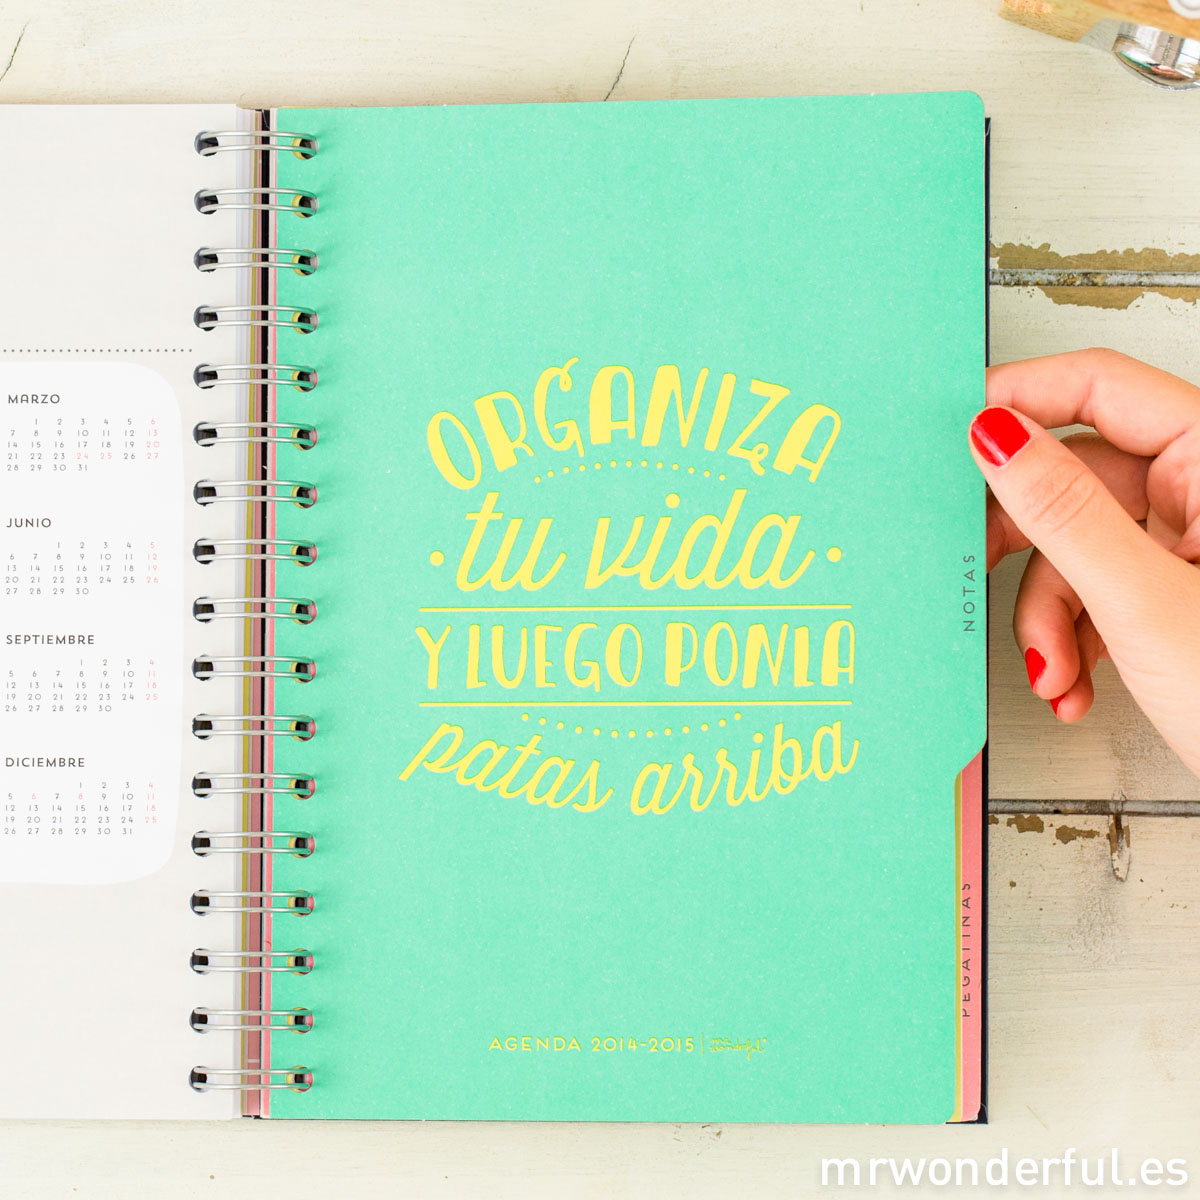 mrwonderful_AGENDA-WONDER_2014-216